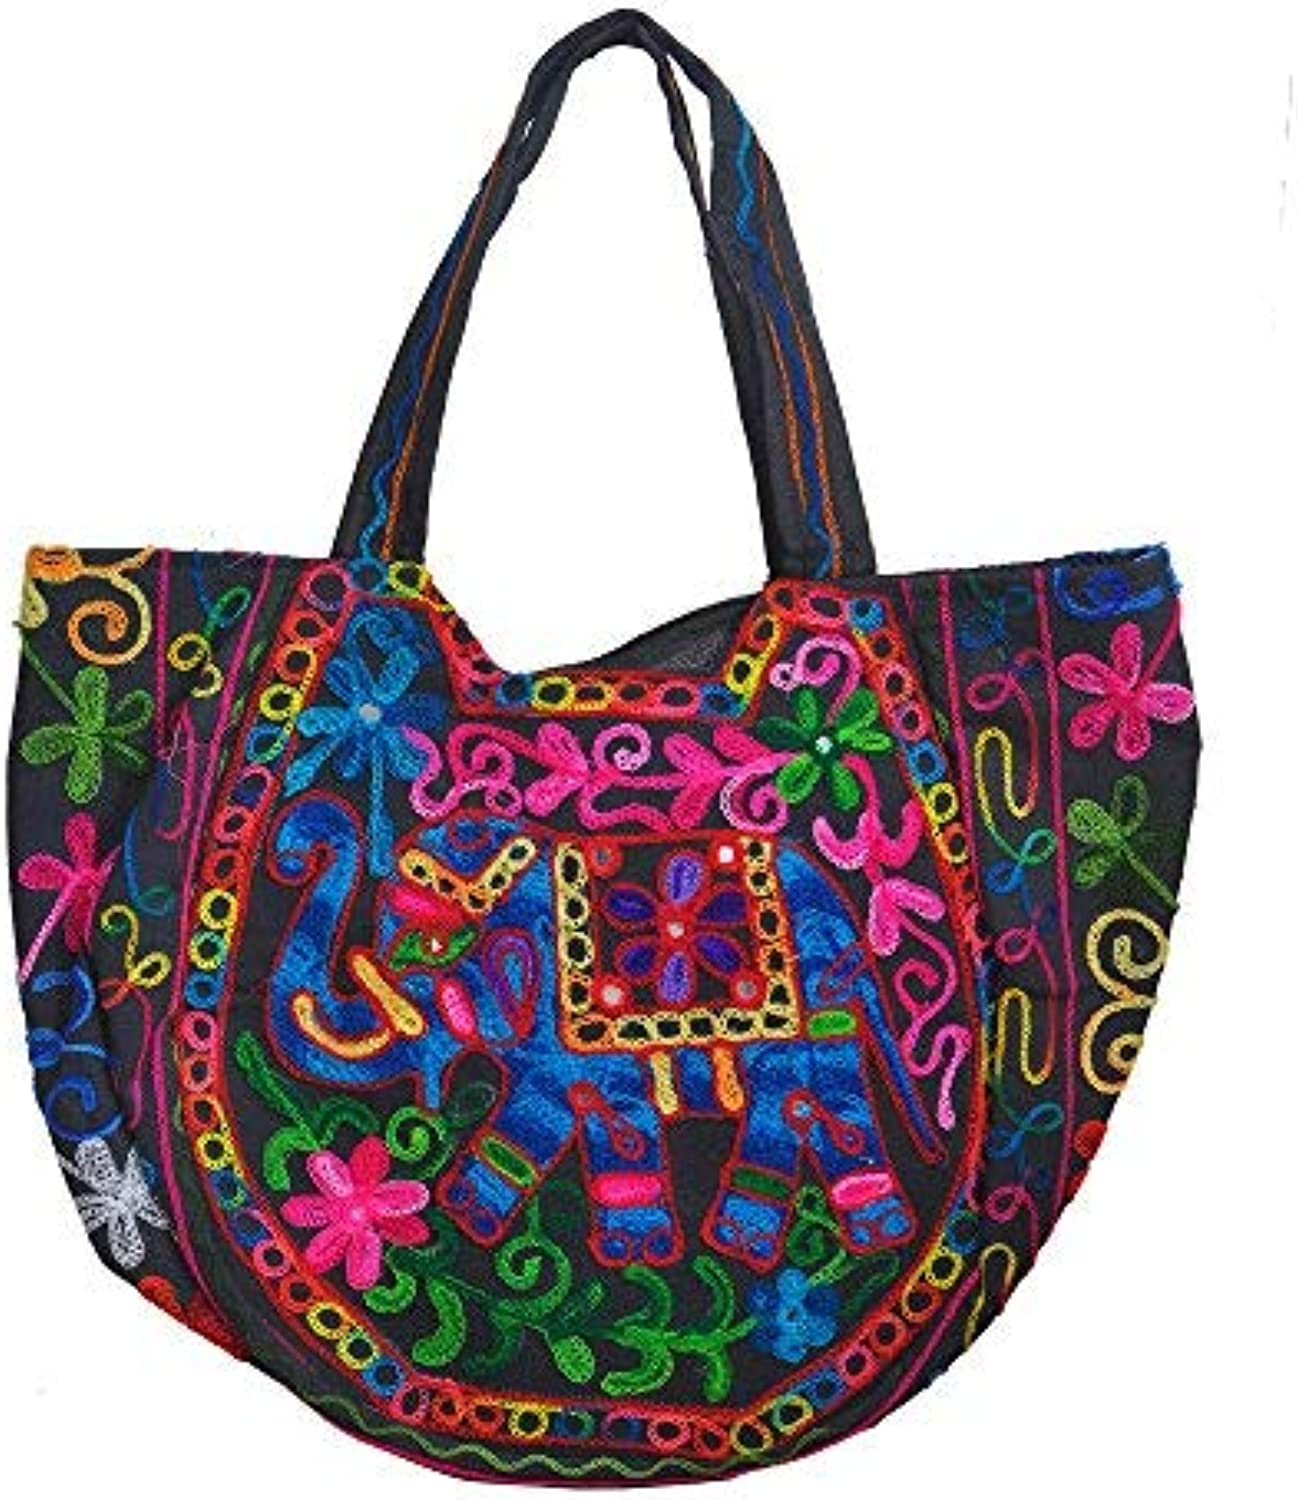 Kashmiri Embroidered handcrafted shoulder bag by Indian artisans